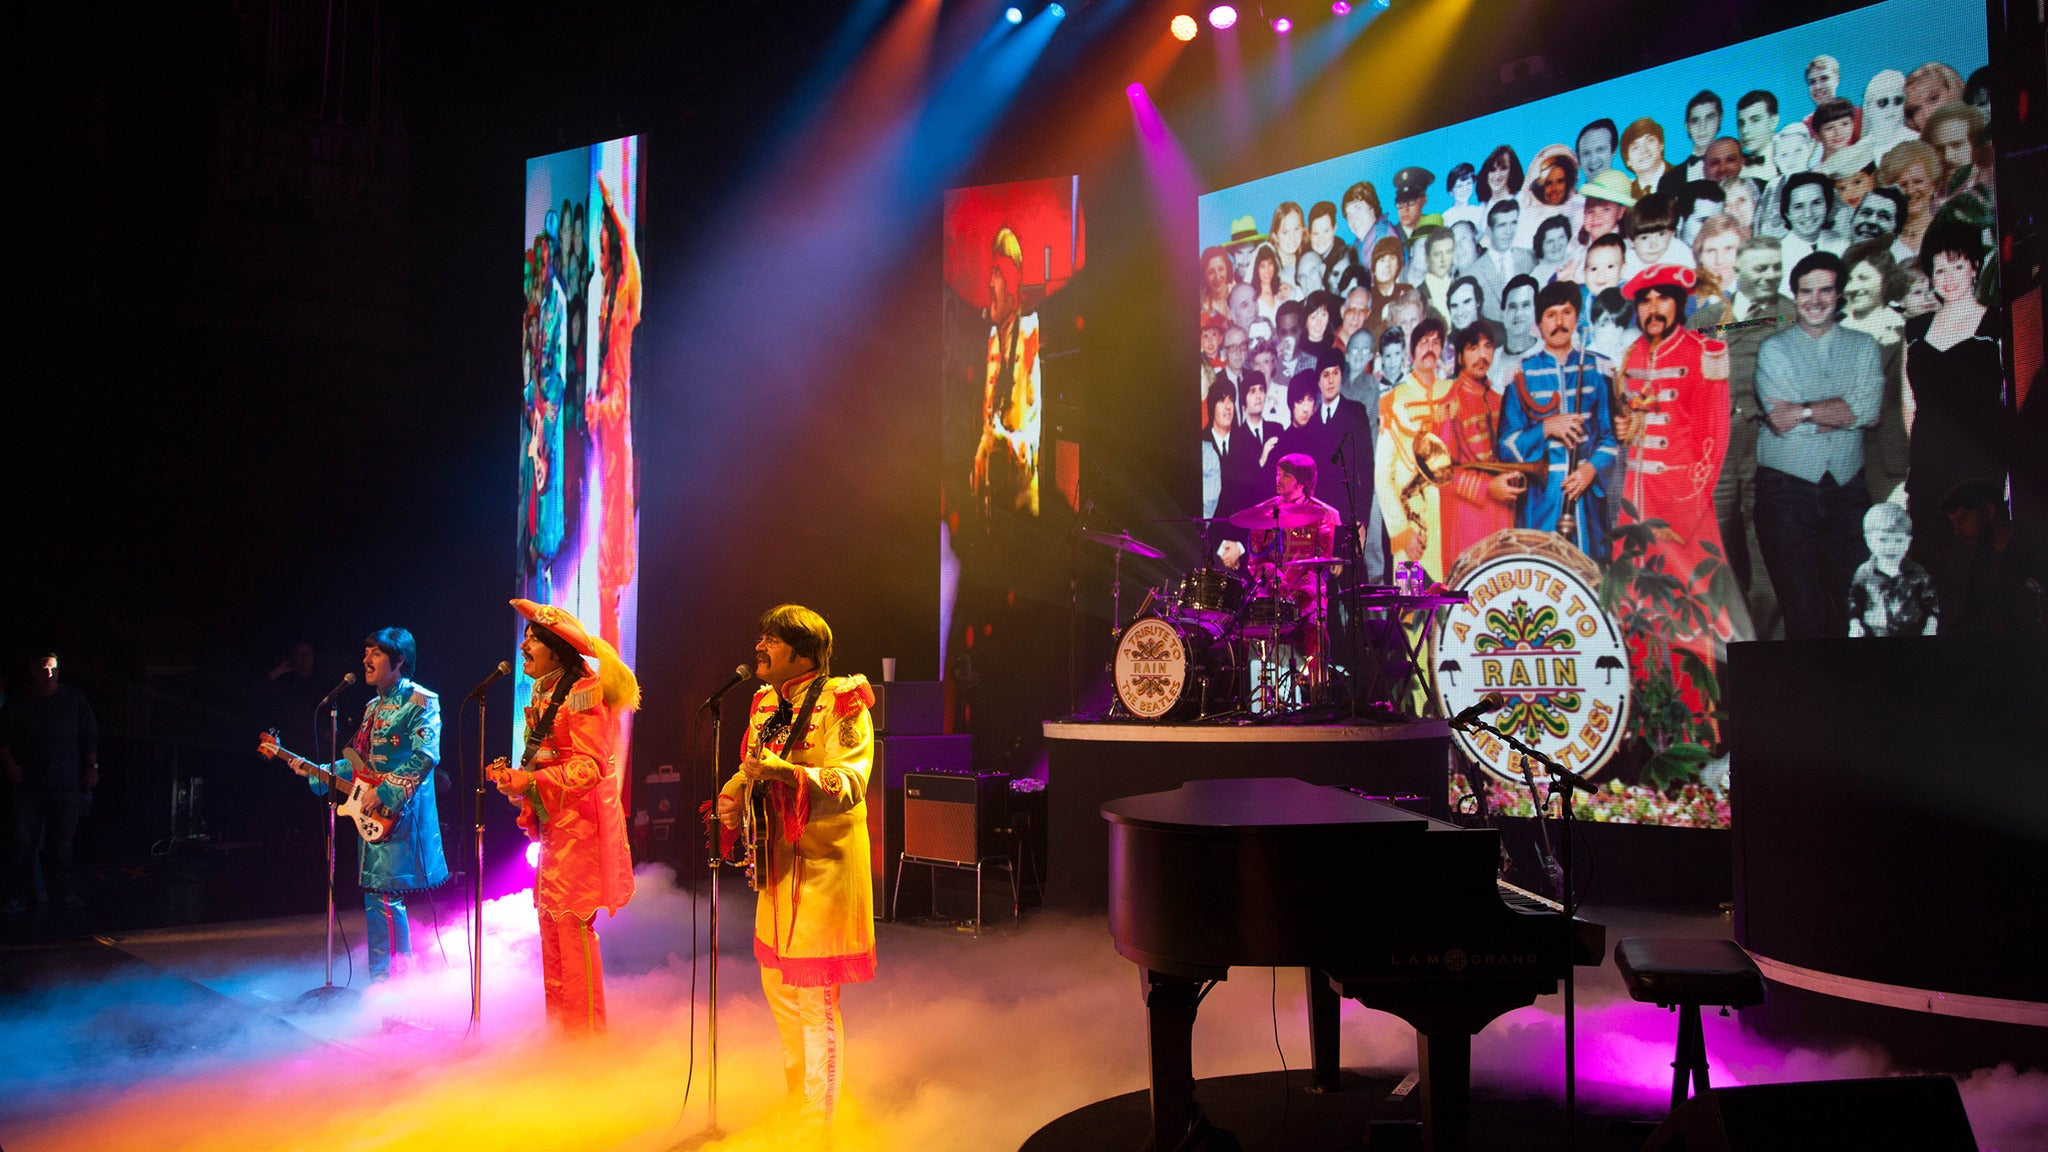 Rain:  A Tribute To The Beatles - San Jose, CA 95113